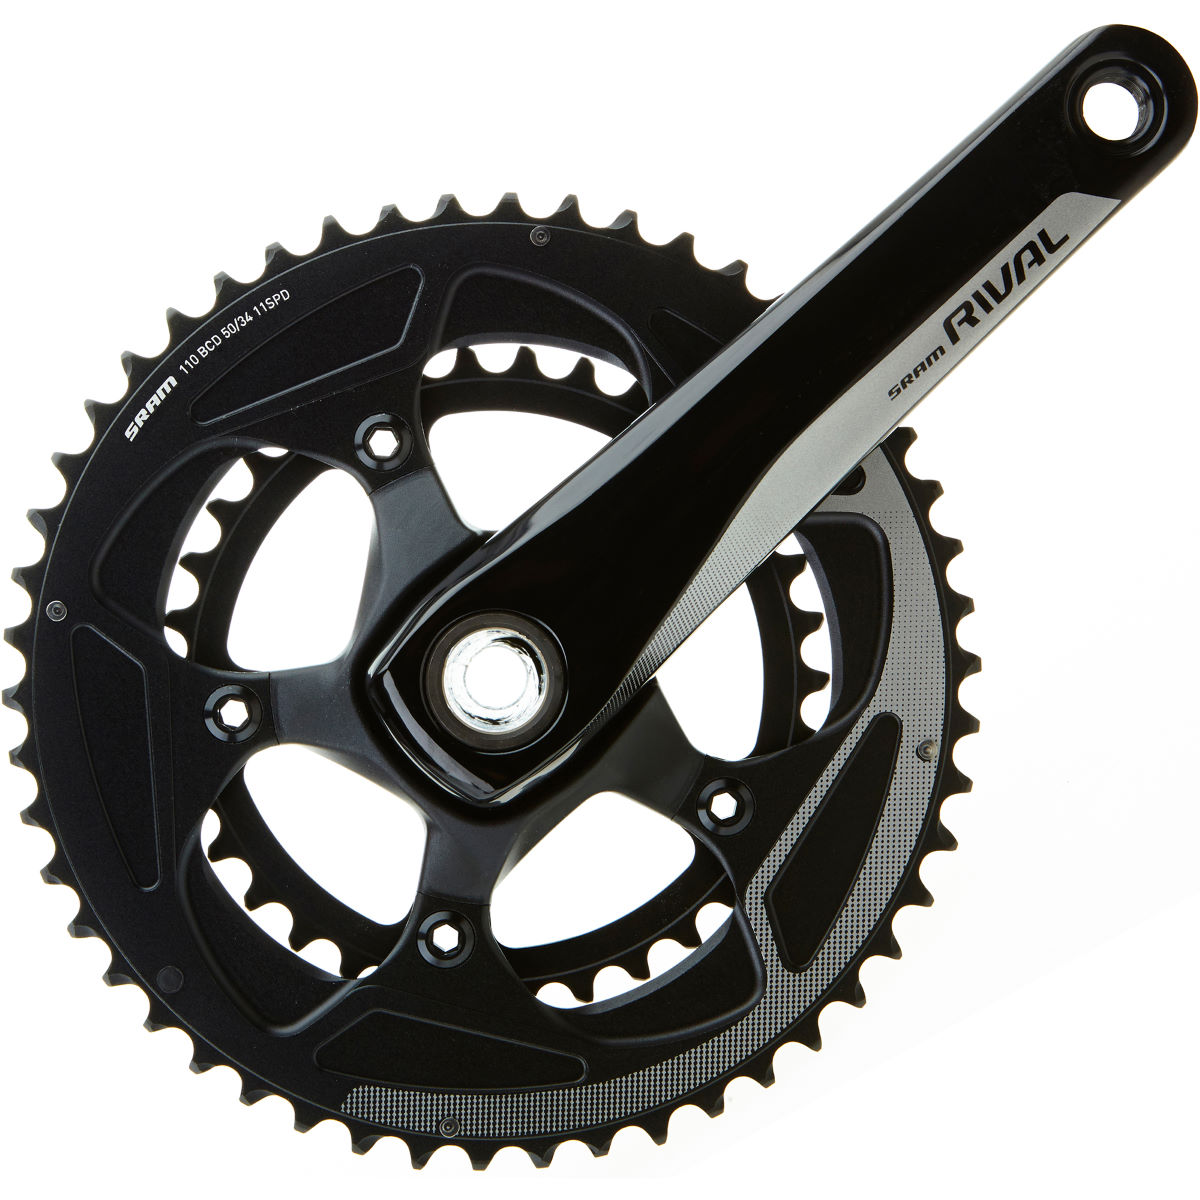 Sram Rival 22 Gxp Compact Chainset (11 Speed) - 50/34t 172.5mm Black